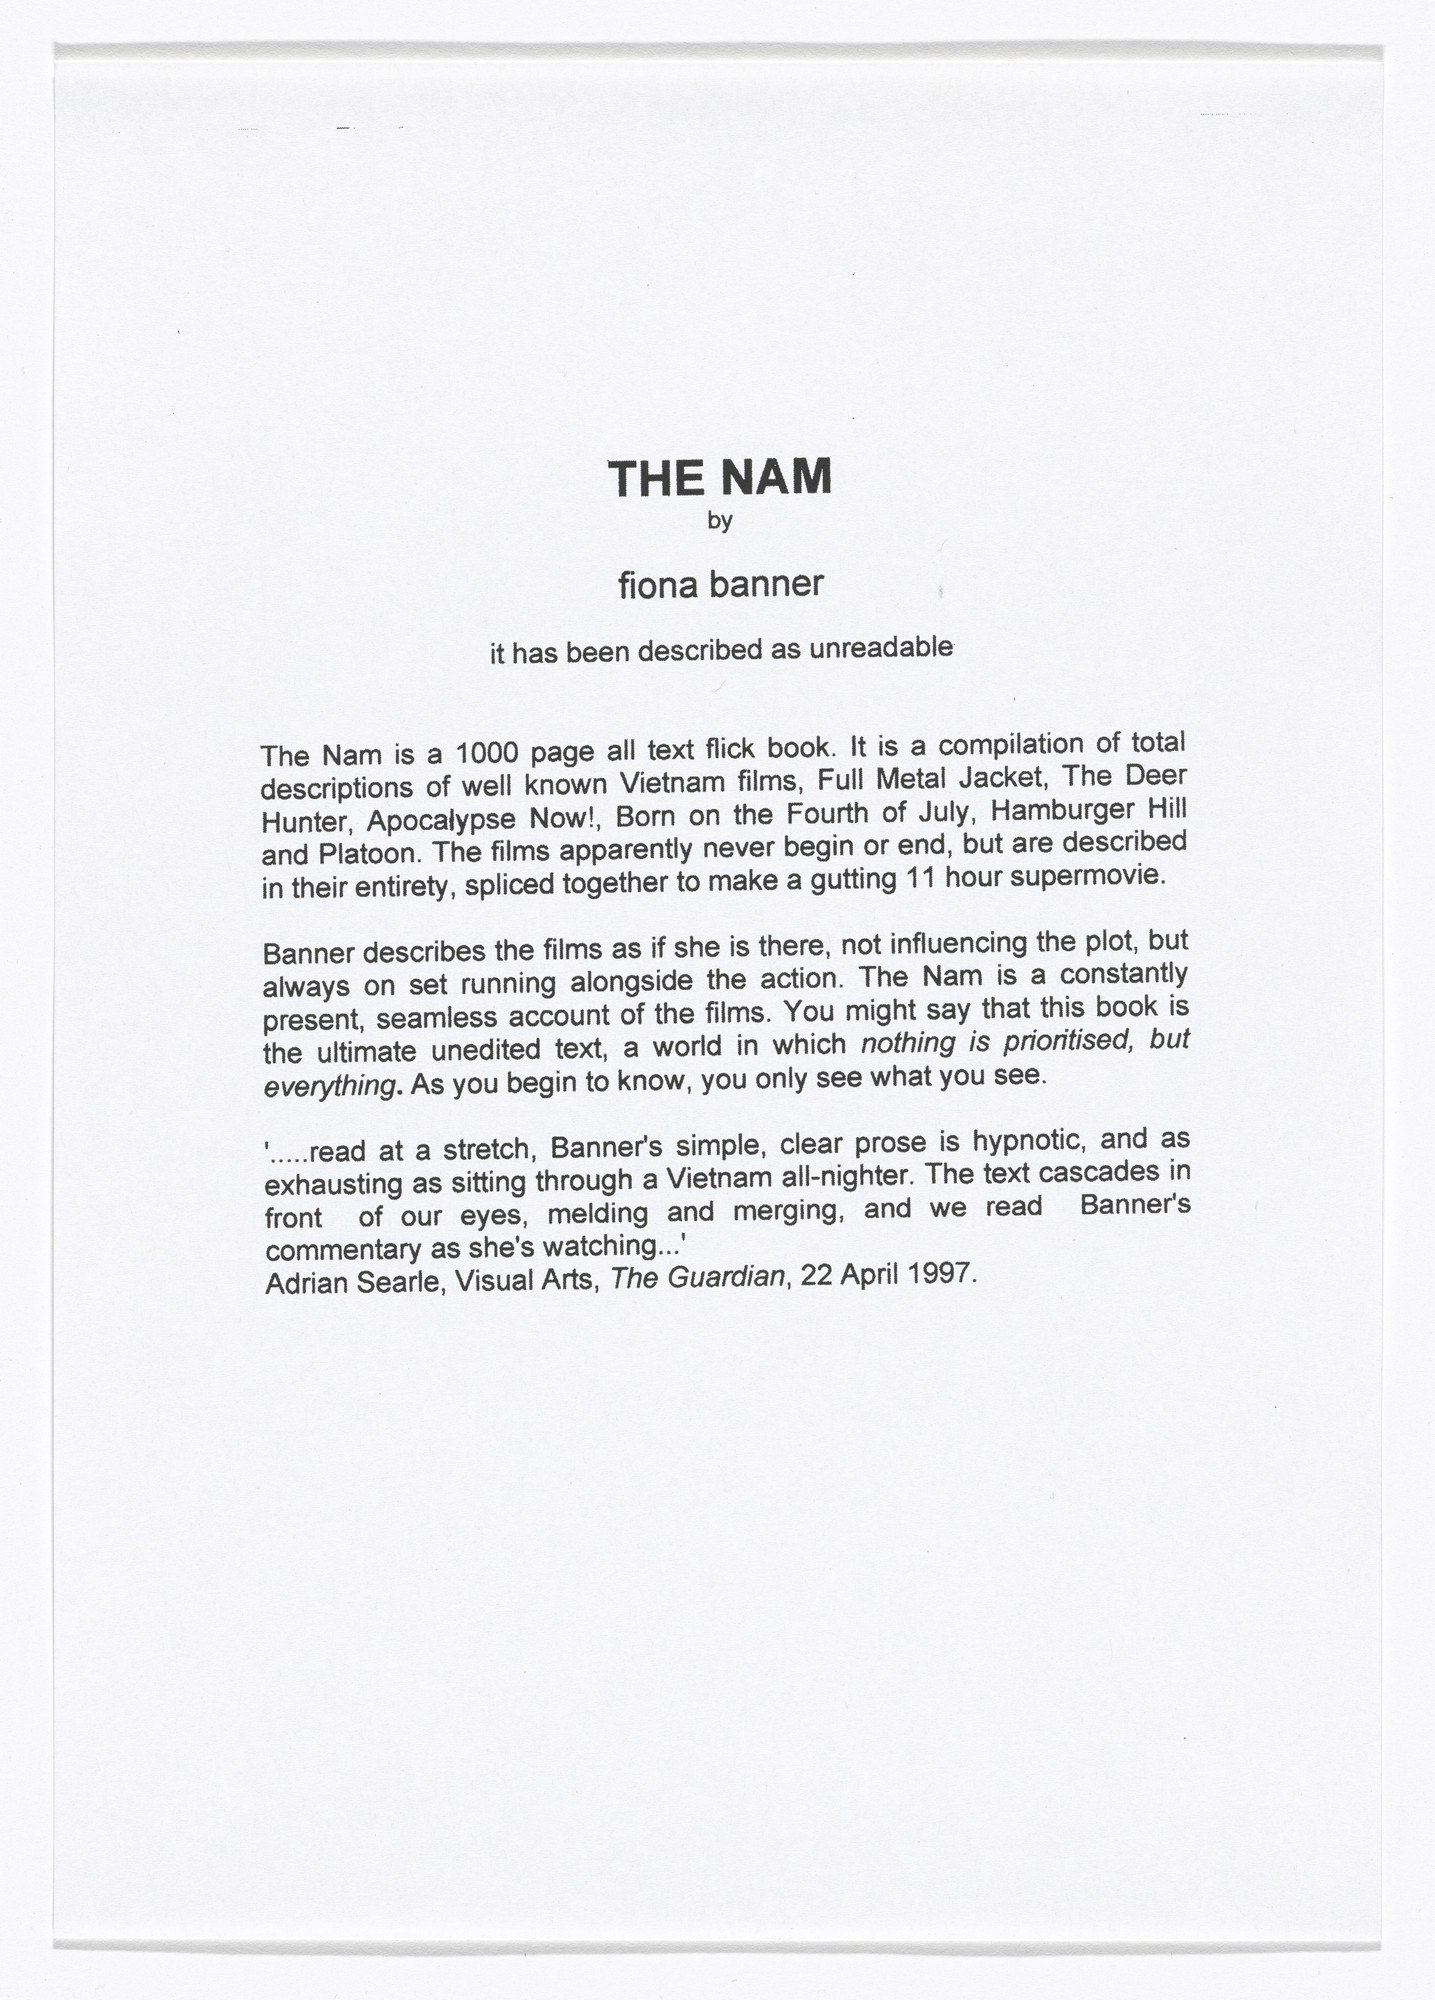 Fiona Banner. Press release for The Nam. n.d.